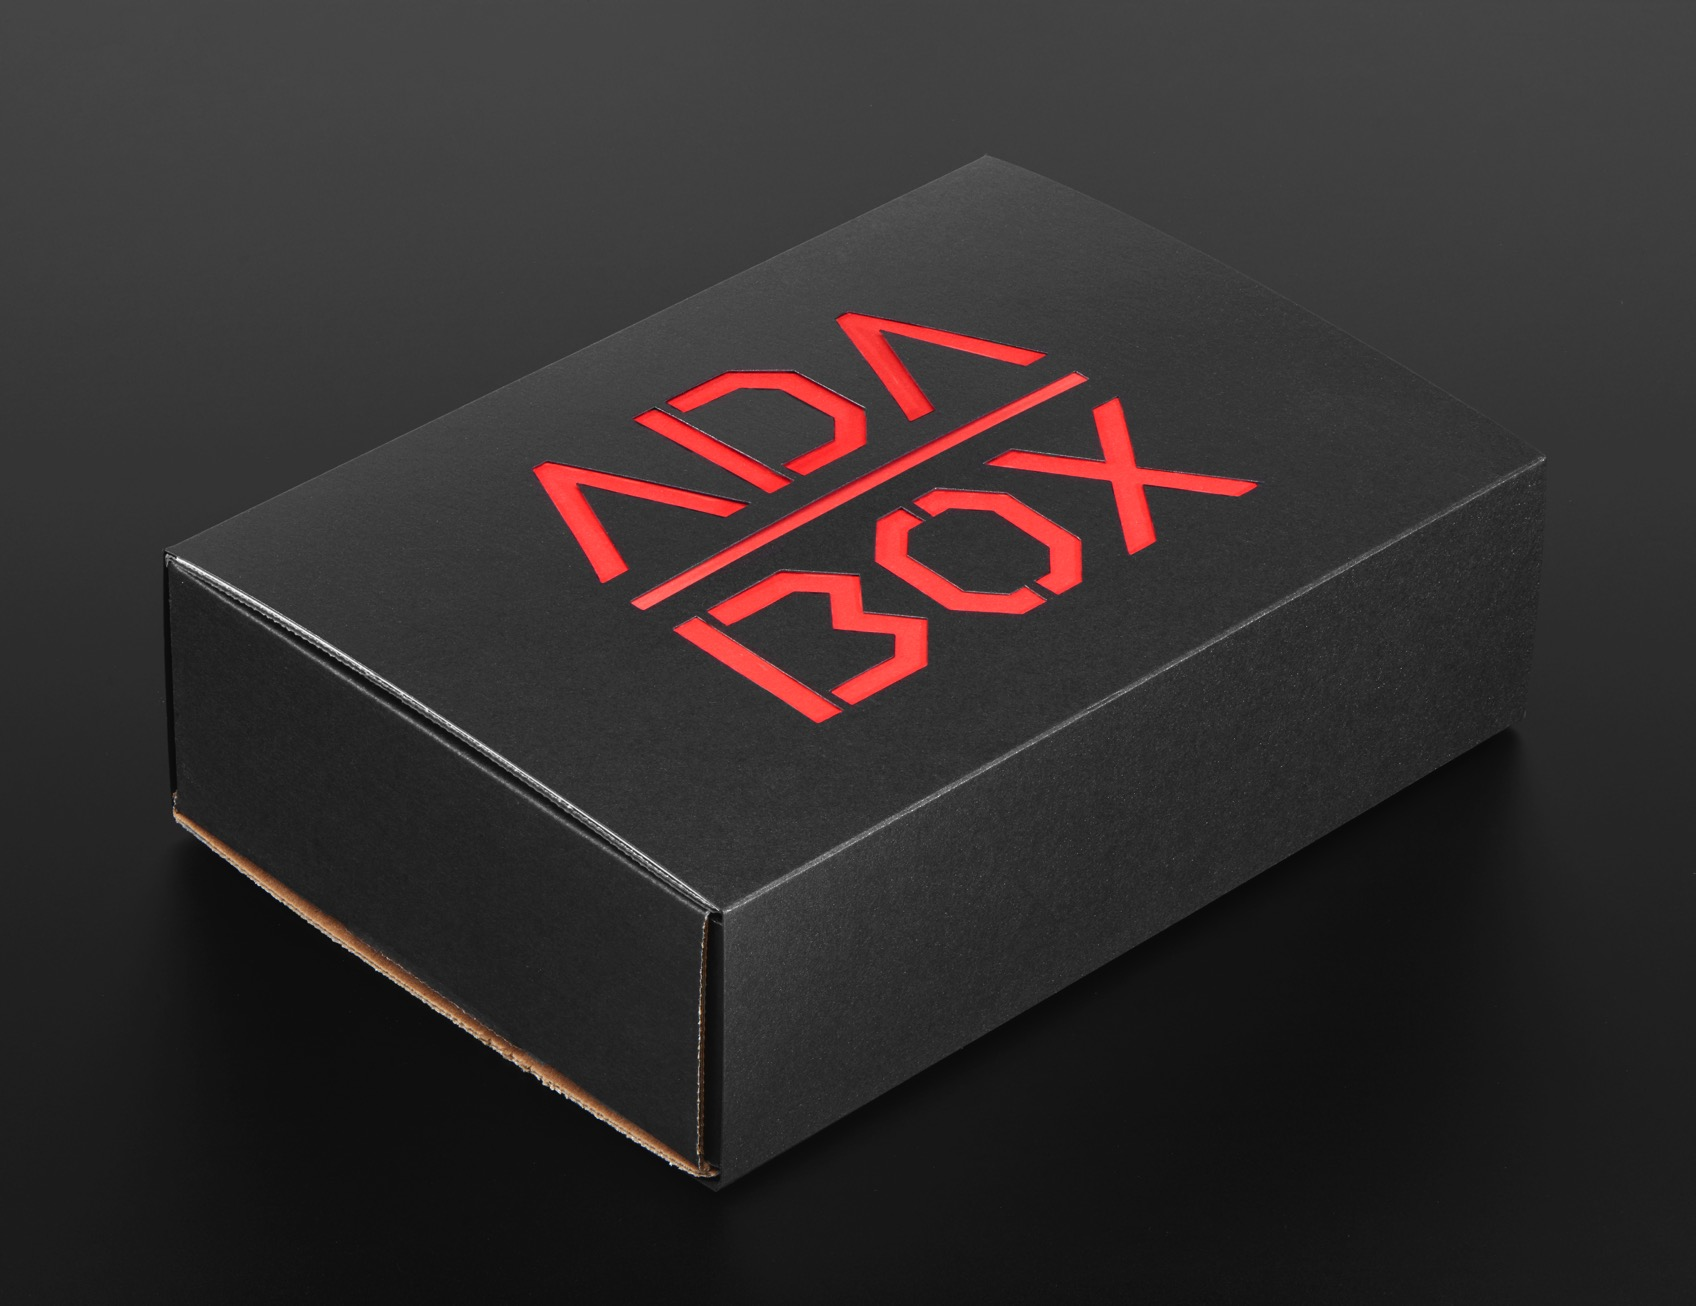 Adabox 03 iso box ORIG